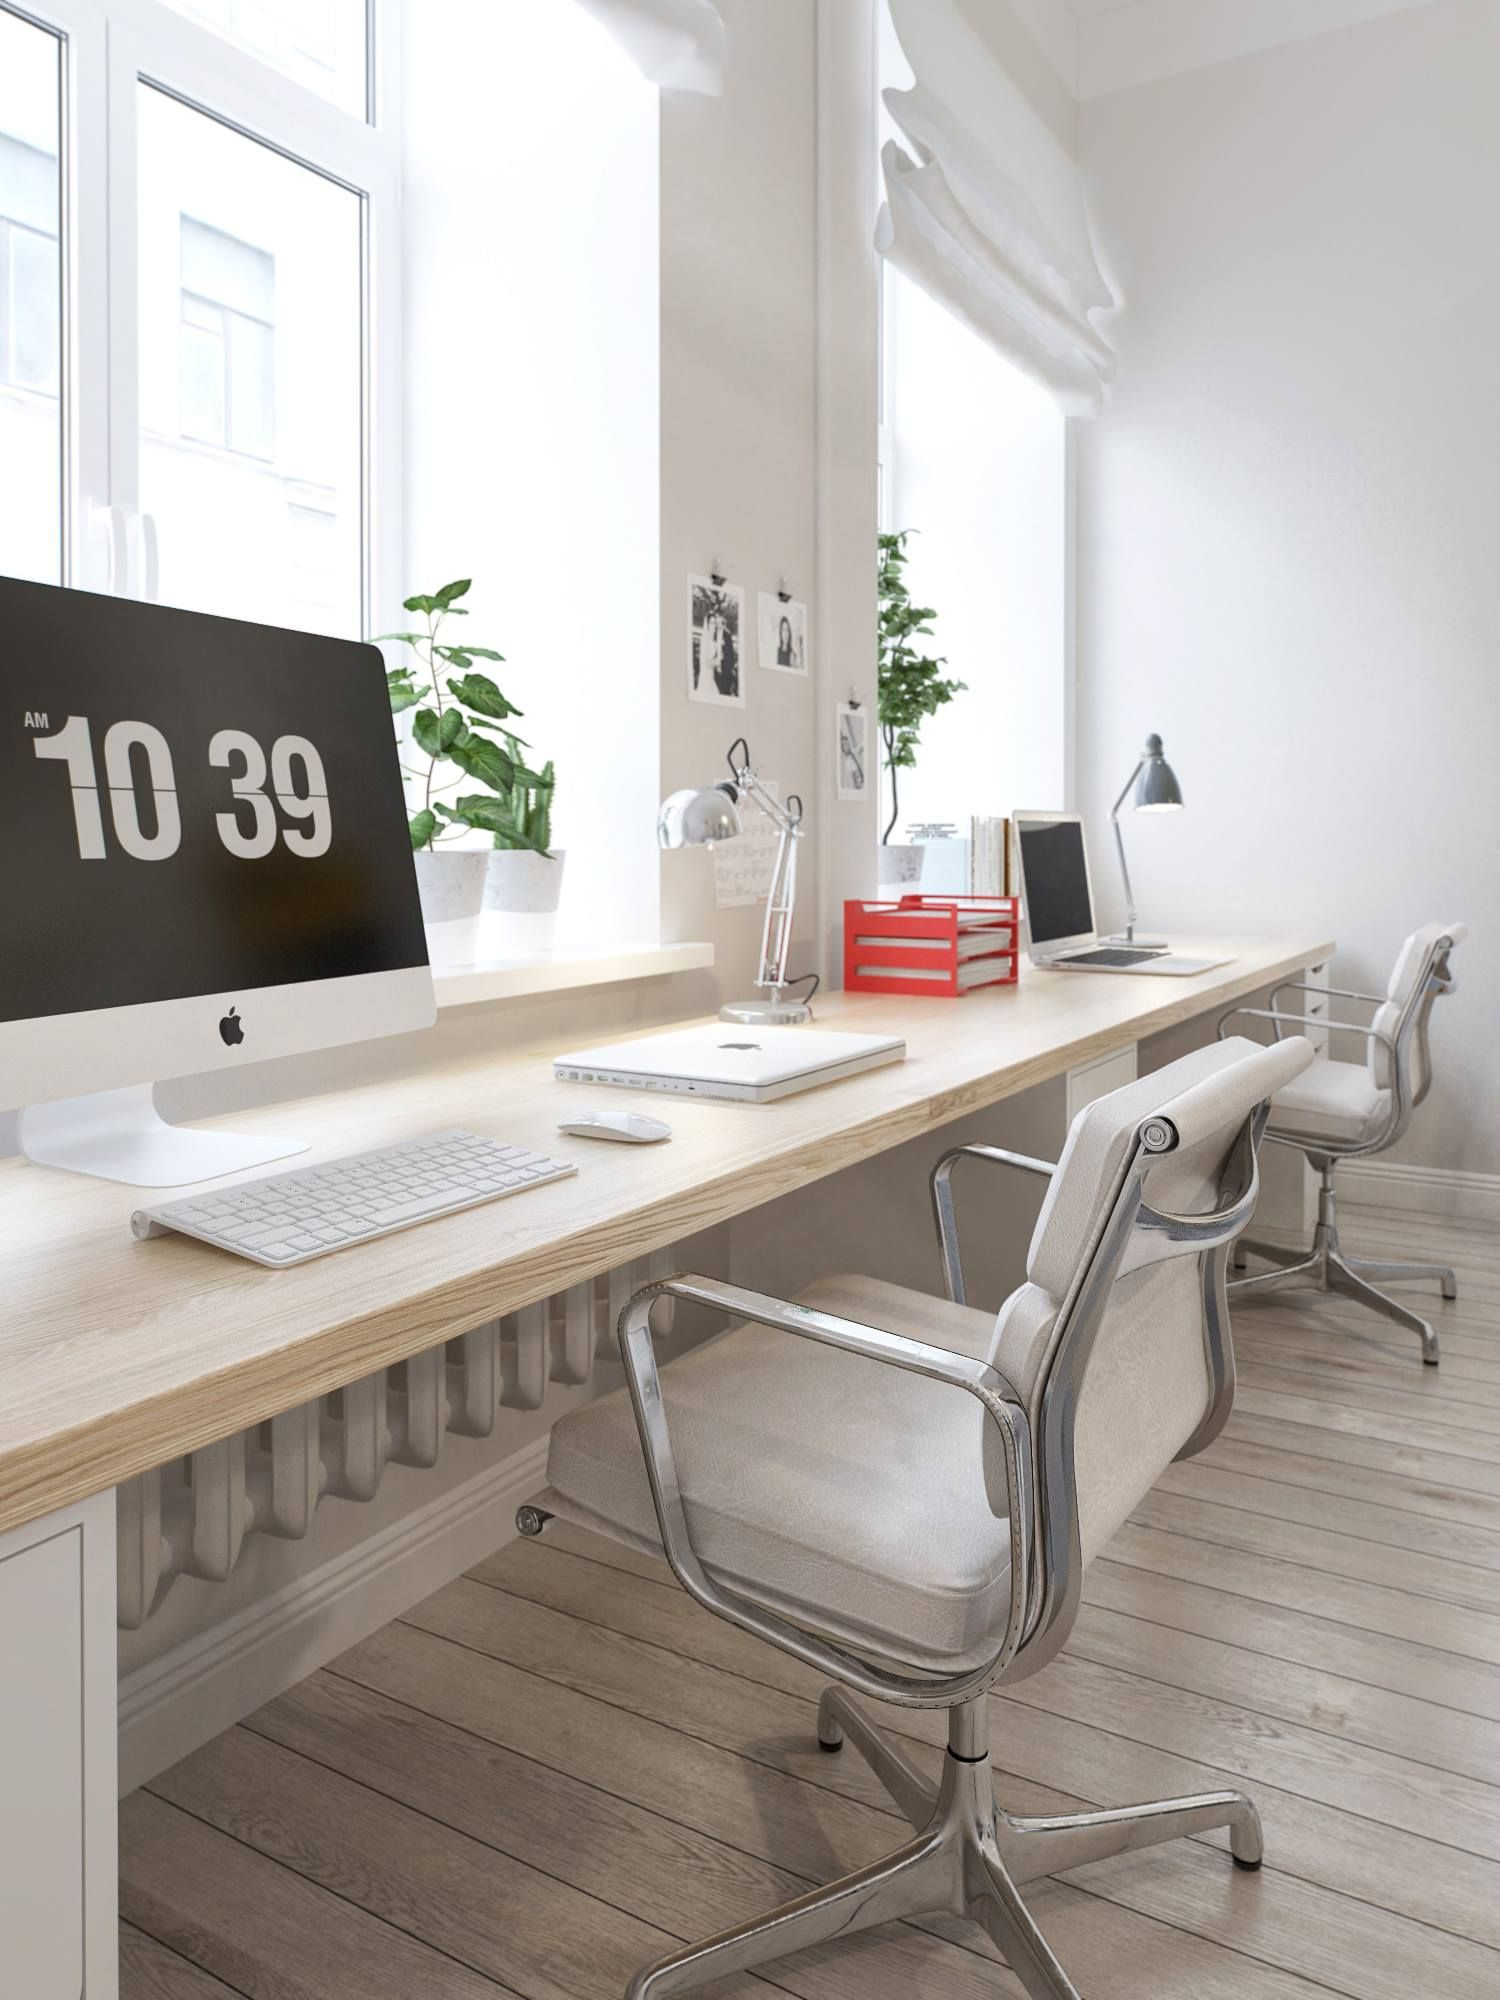 Scandinavian Office Design Workplace Scandinavian Office Scandinavian Style Scandinavian Interior Design Modern Interior Design Interior Design Pinterest Pin By Reef On Decor Home Office Design Home Office Home Office